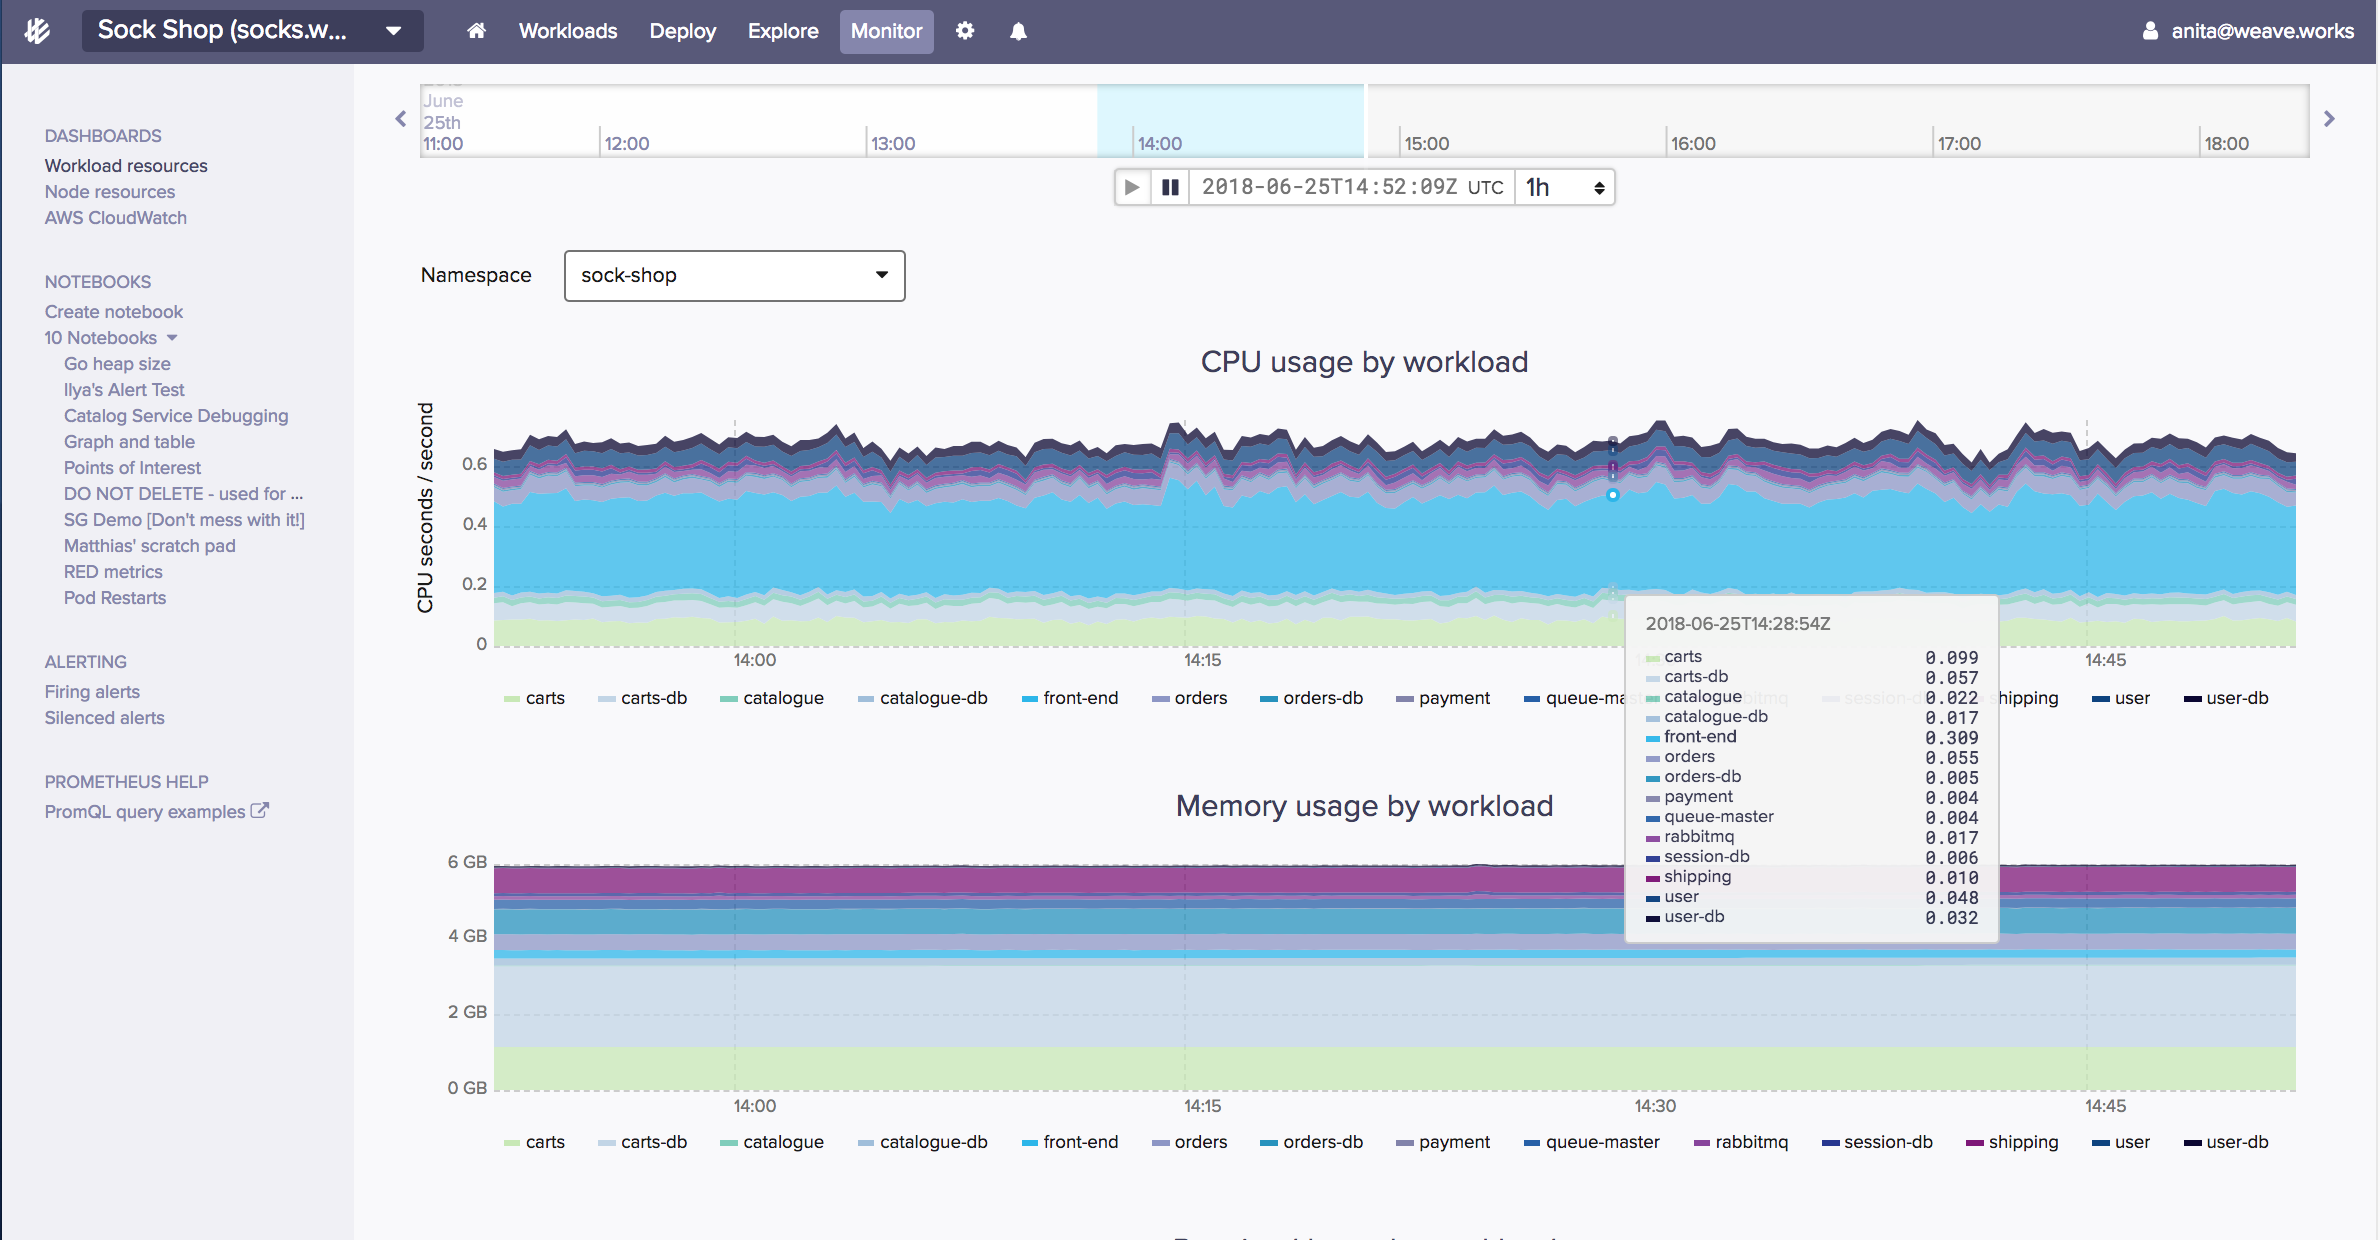 mouseover-dashboard (1).png